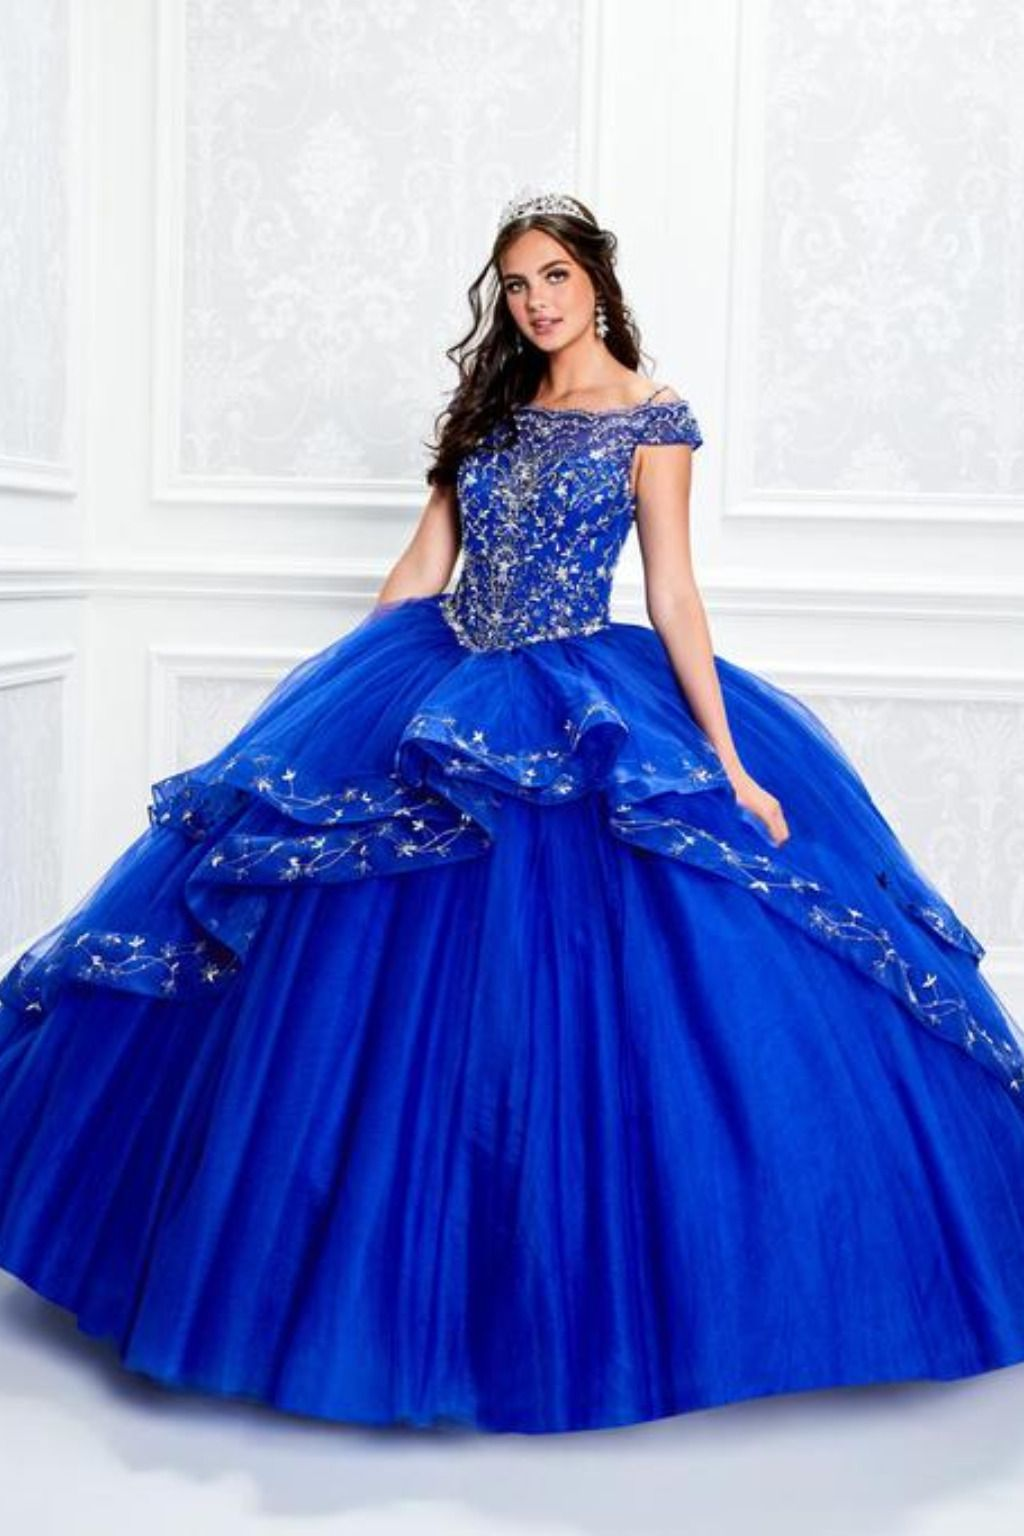 4c874bc96 ... this Princesa by Ariana Vara style is Tulle, Embroidered Lace & Hot  Stones. This style comes with a matching Shawl Quinceanera Collection Dress  PR11926 ...